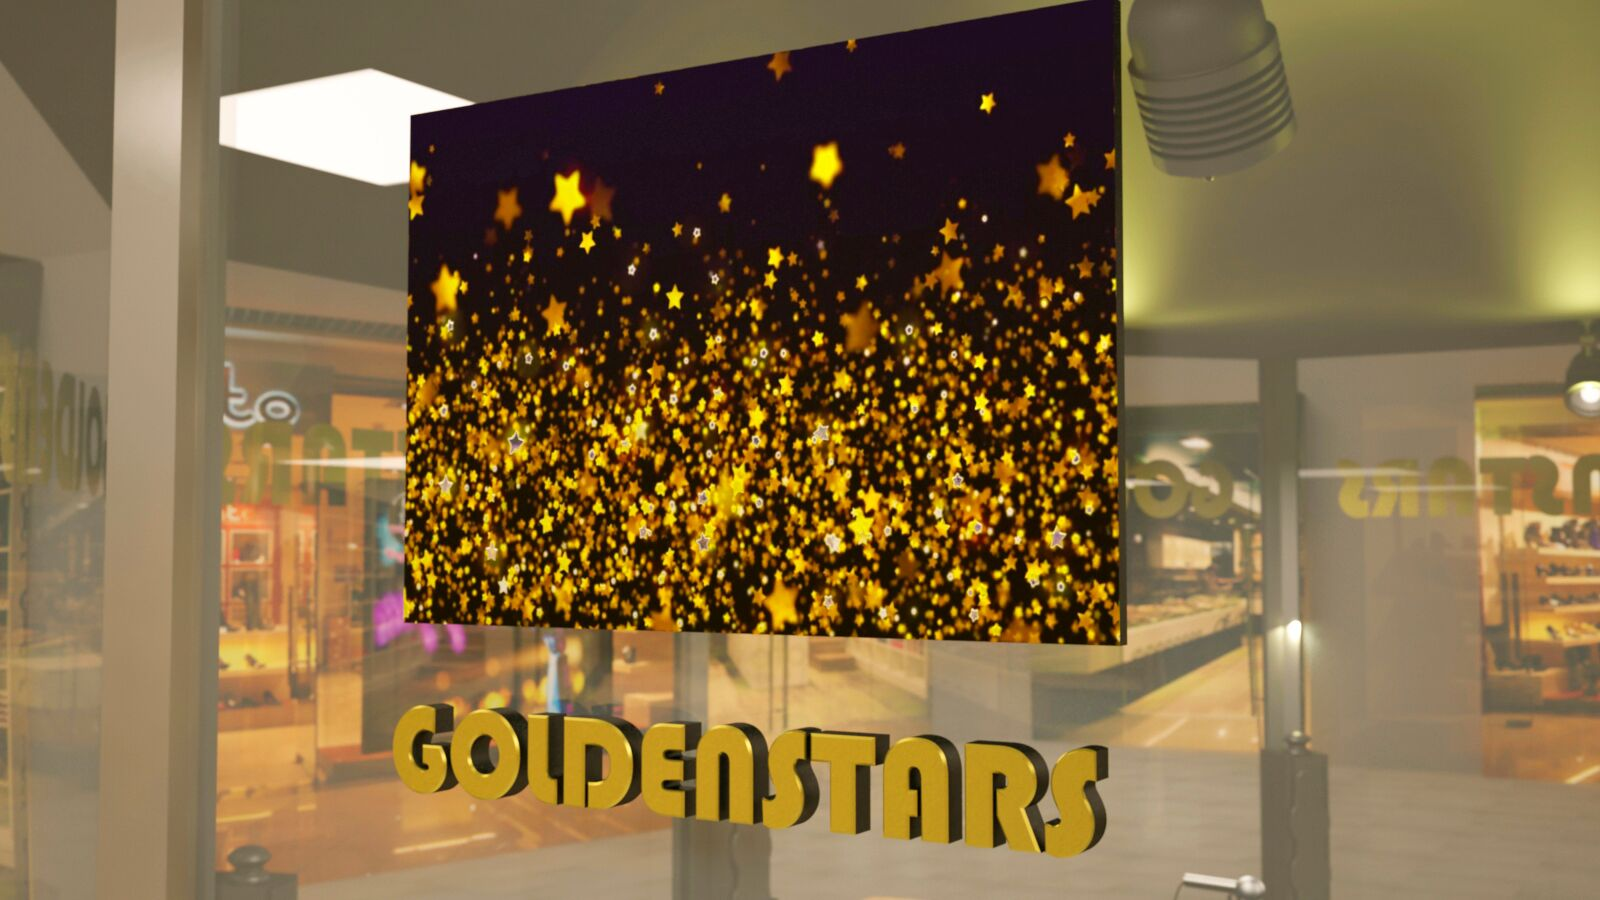 Goldenstars